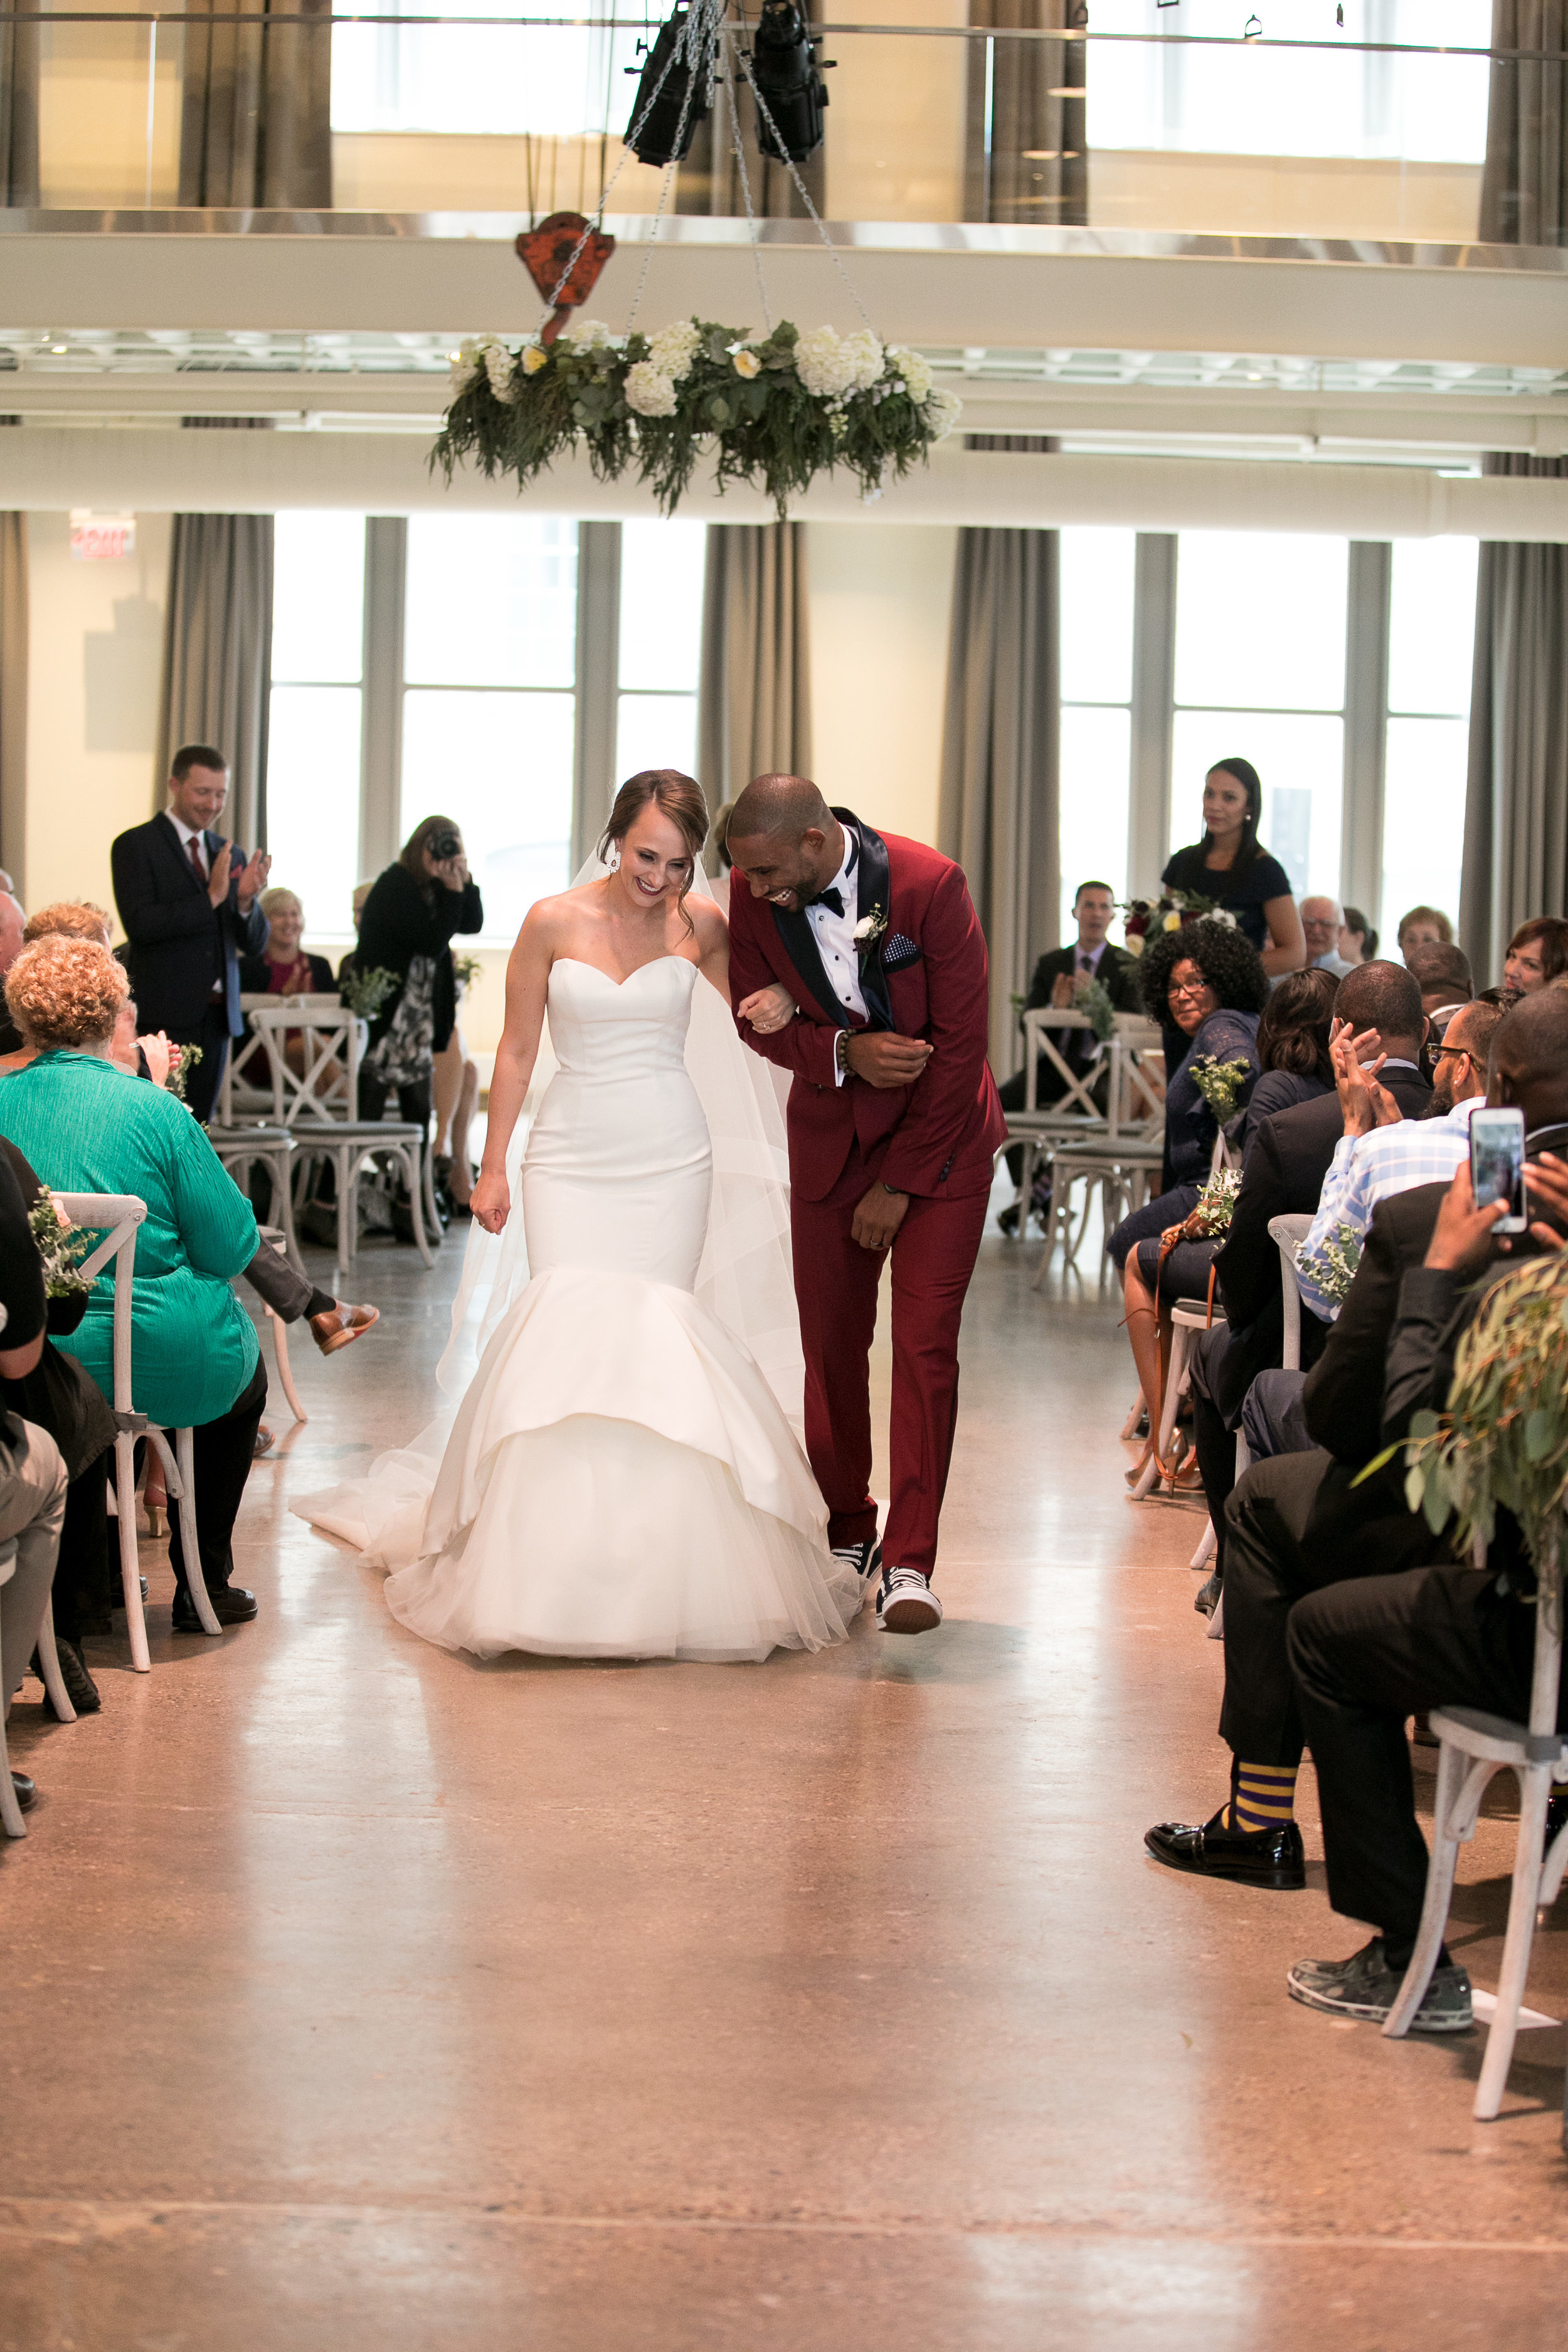 just married picture | Alice HQ Photography | Machine Shop Minneapolis | Sixpence Events and Planning wedding planner.JPG